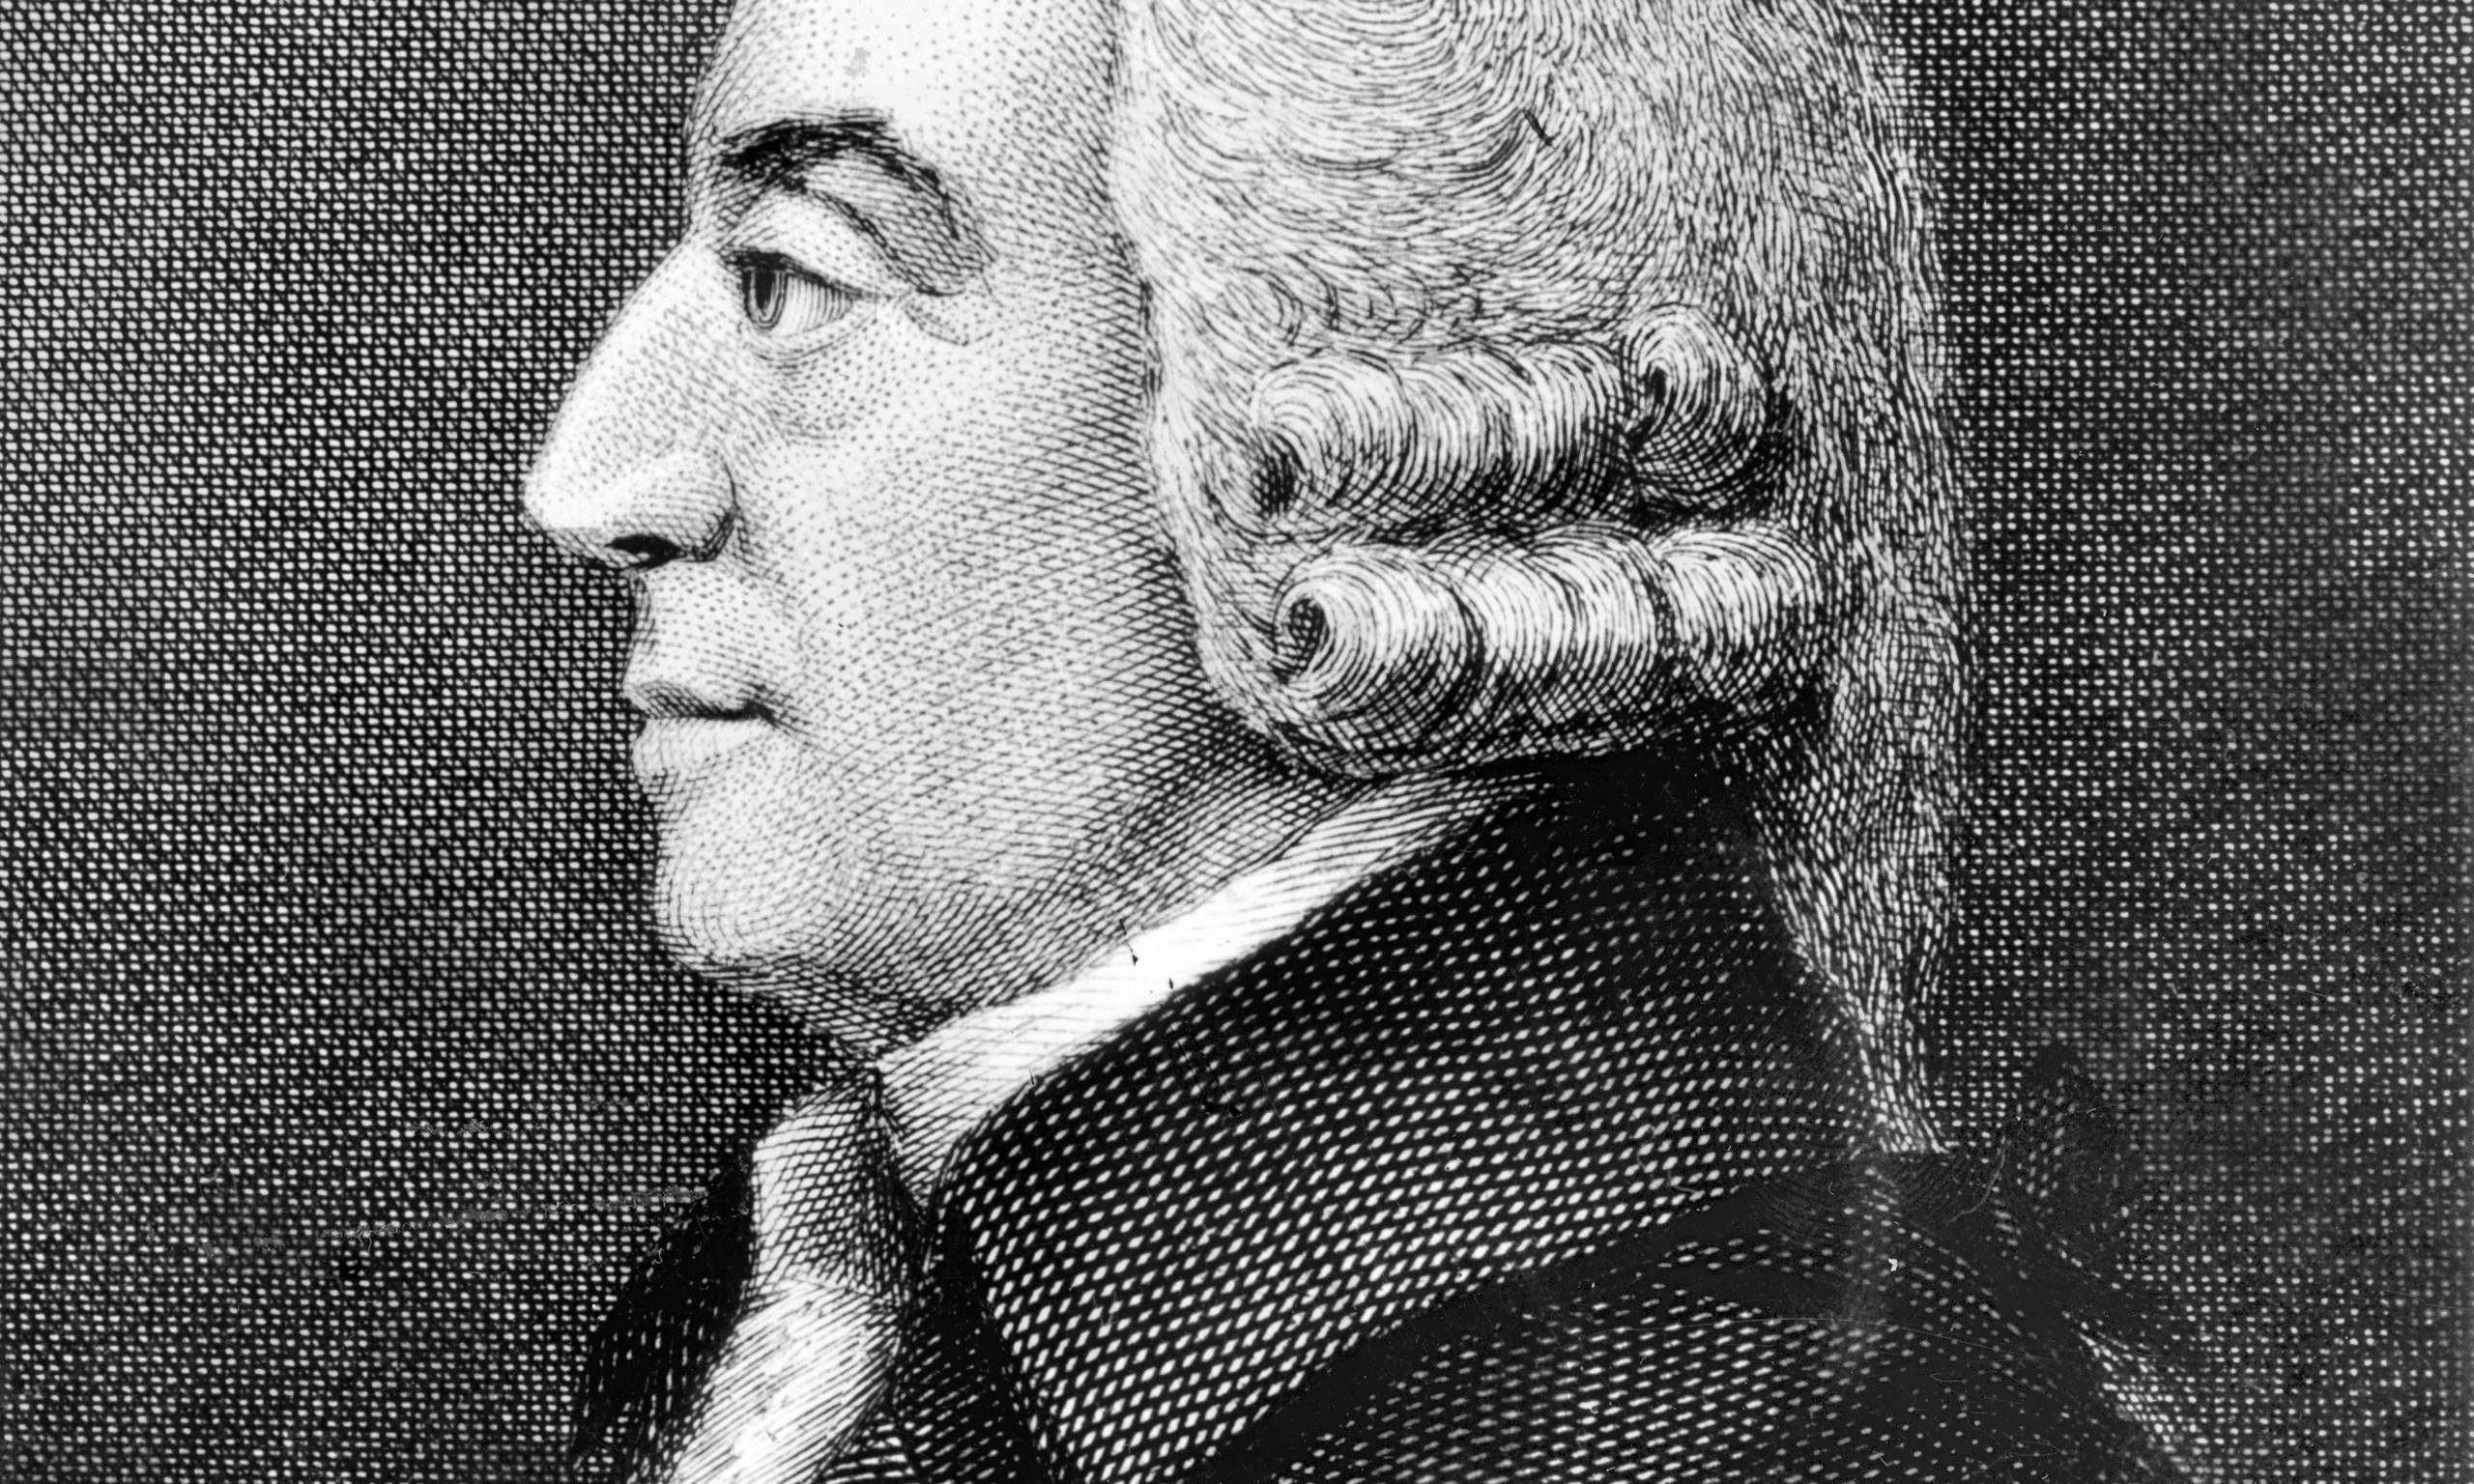 Adam Smith Libros Biografia De Adam Smith Cantineoqueteveo